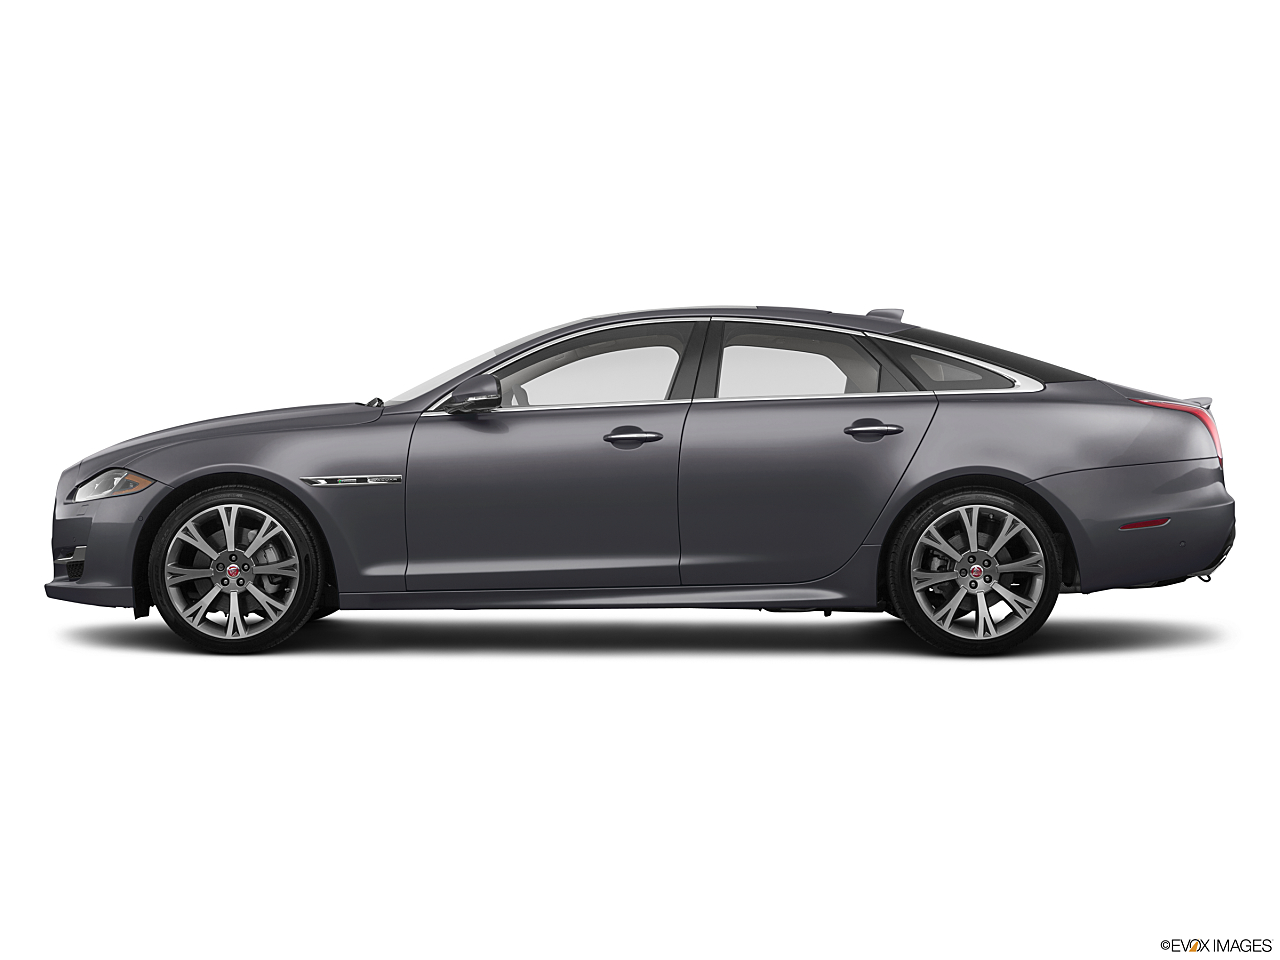 2018 Jaguar XJ At Jake Kaplanu0027s Norwood Of Norwood, MA. The Dealership Has  Not